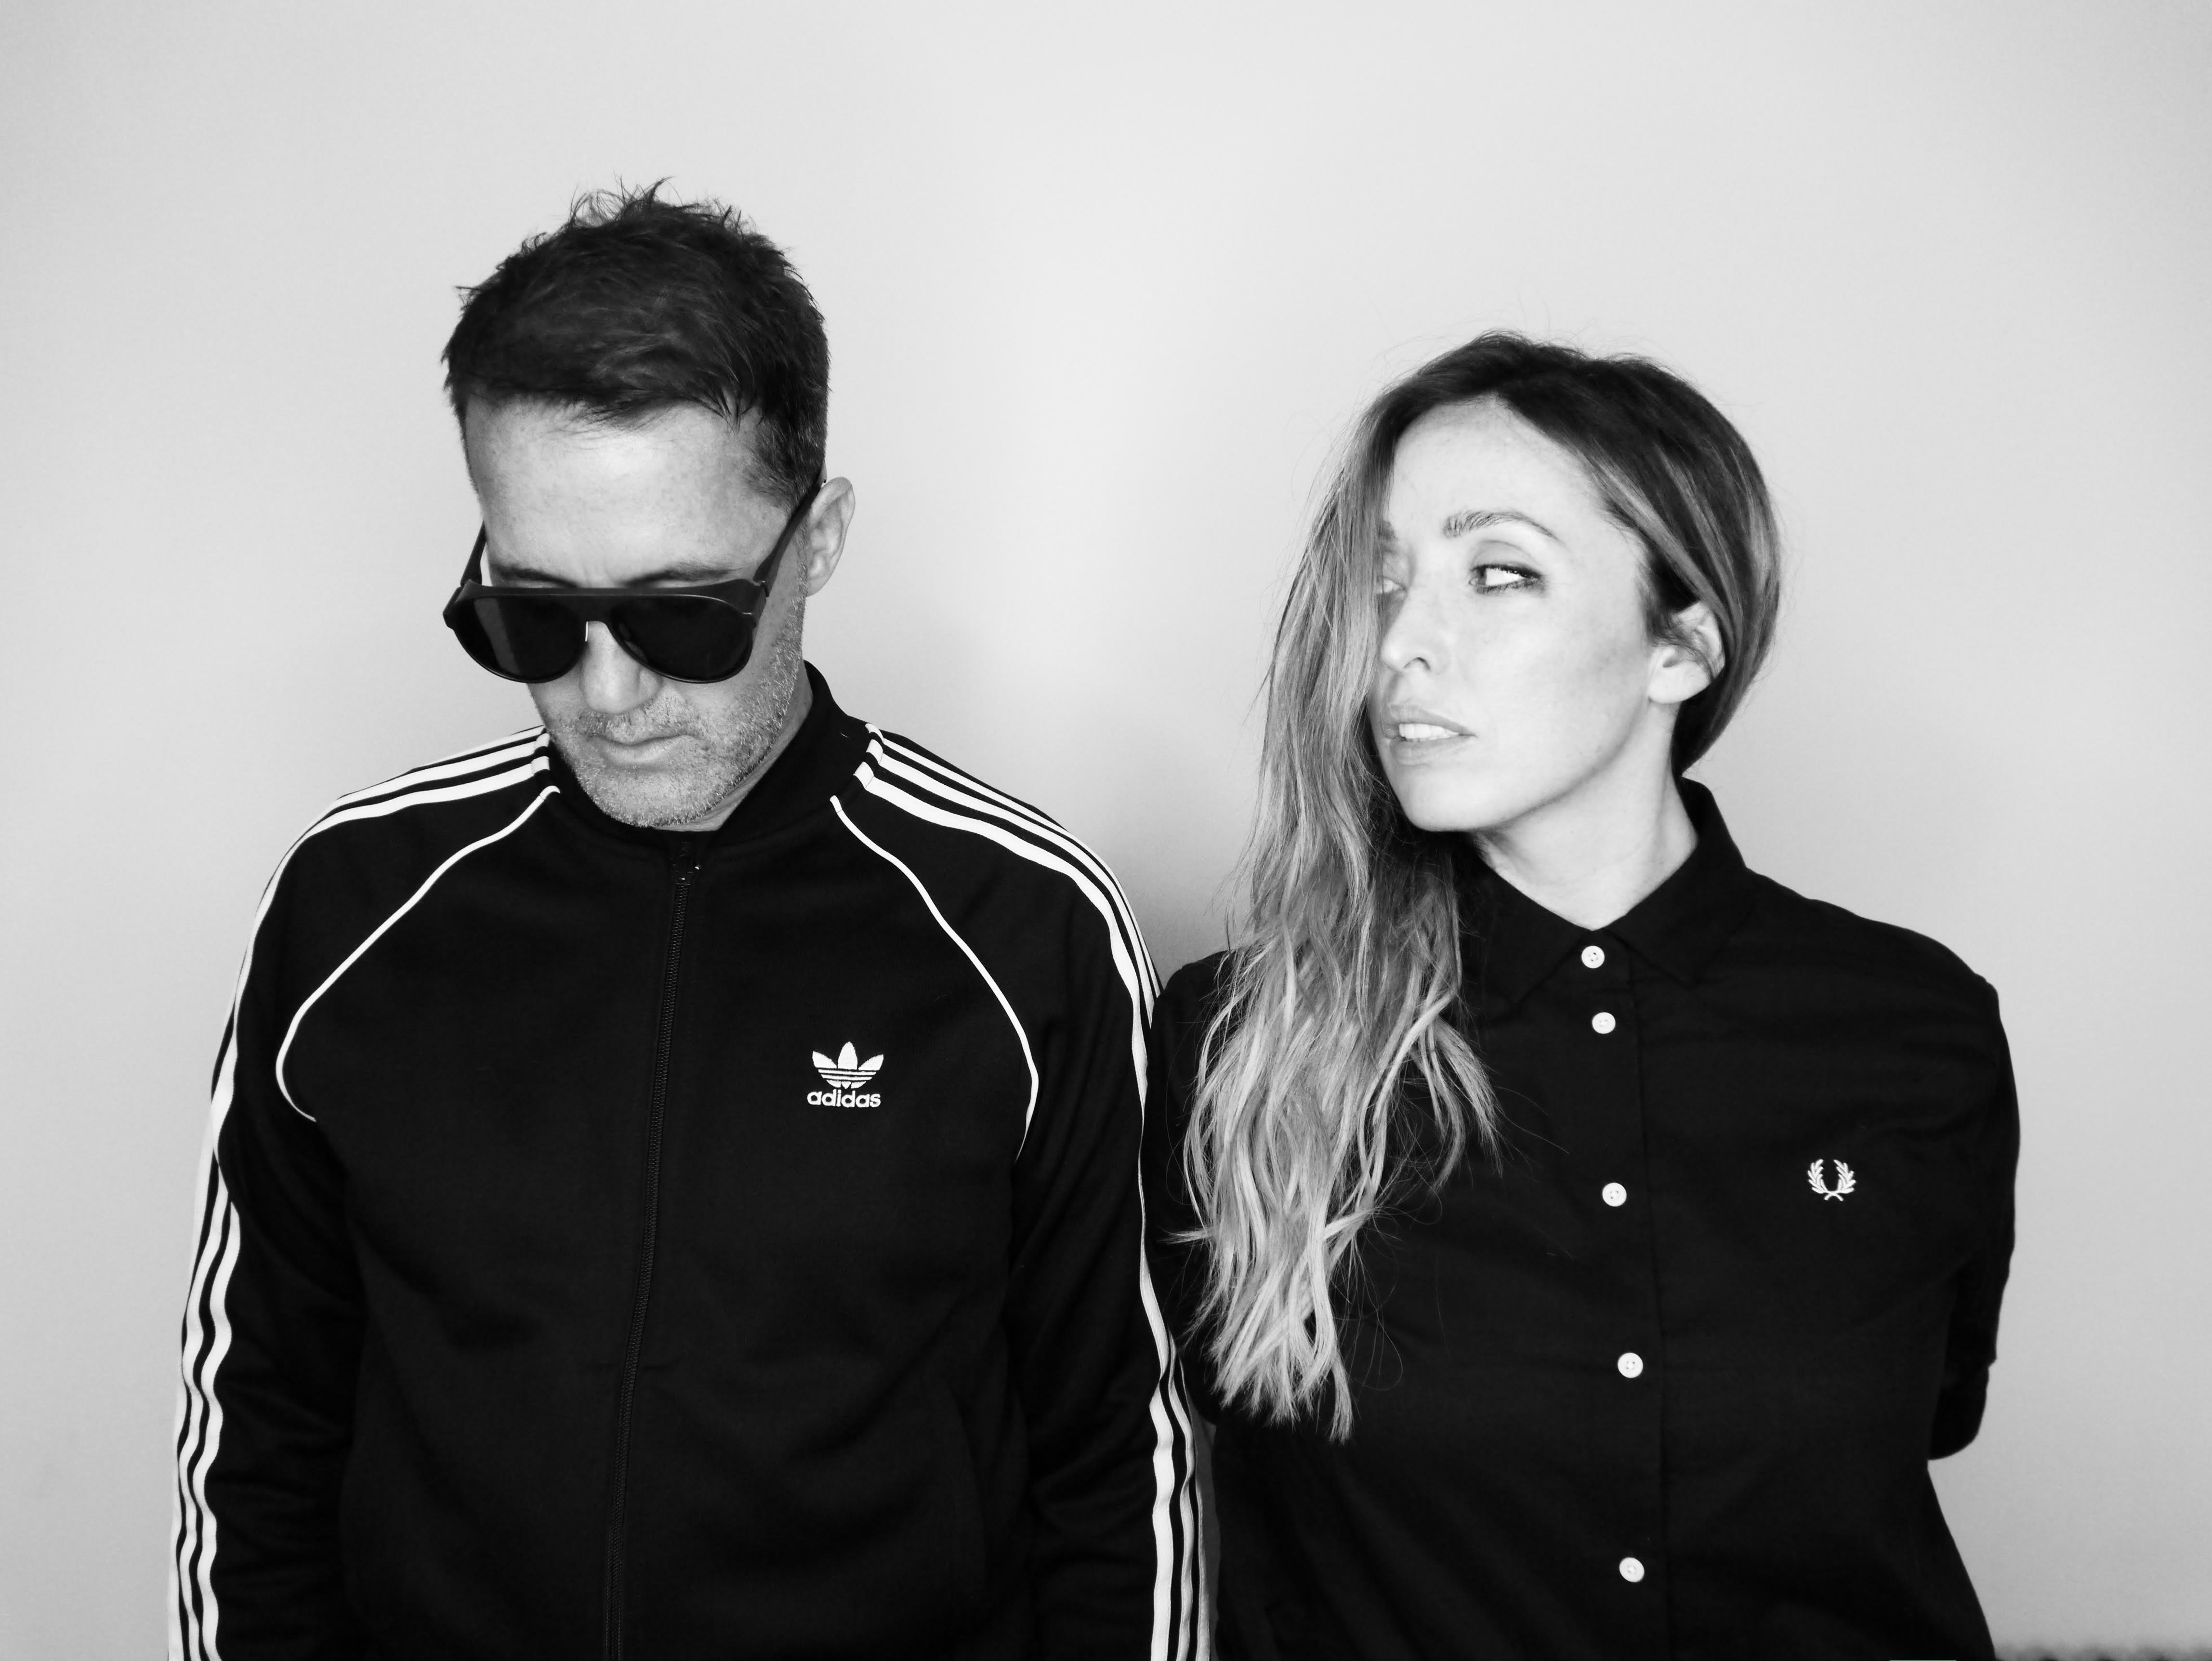 The ting tings we started nothing download.